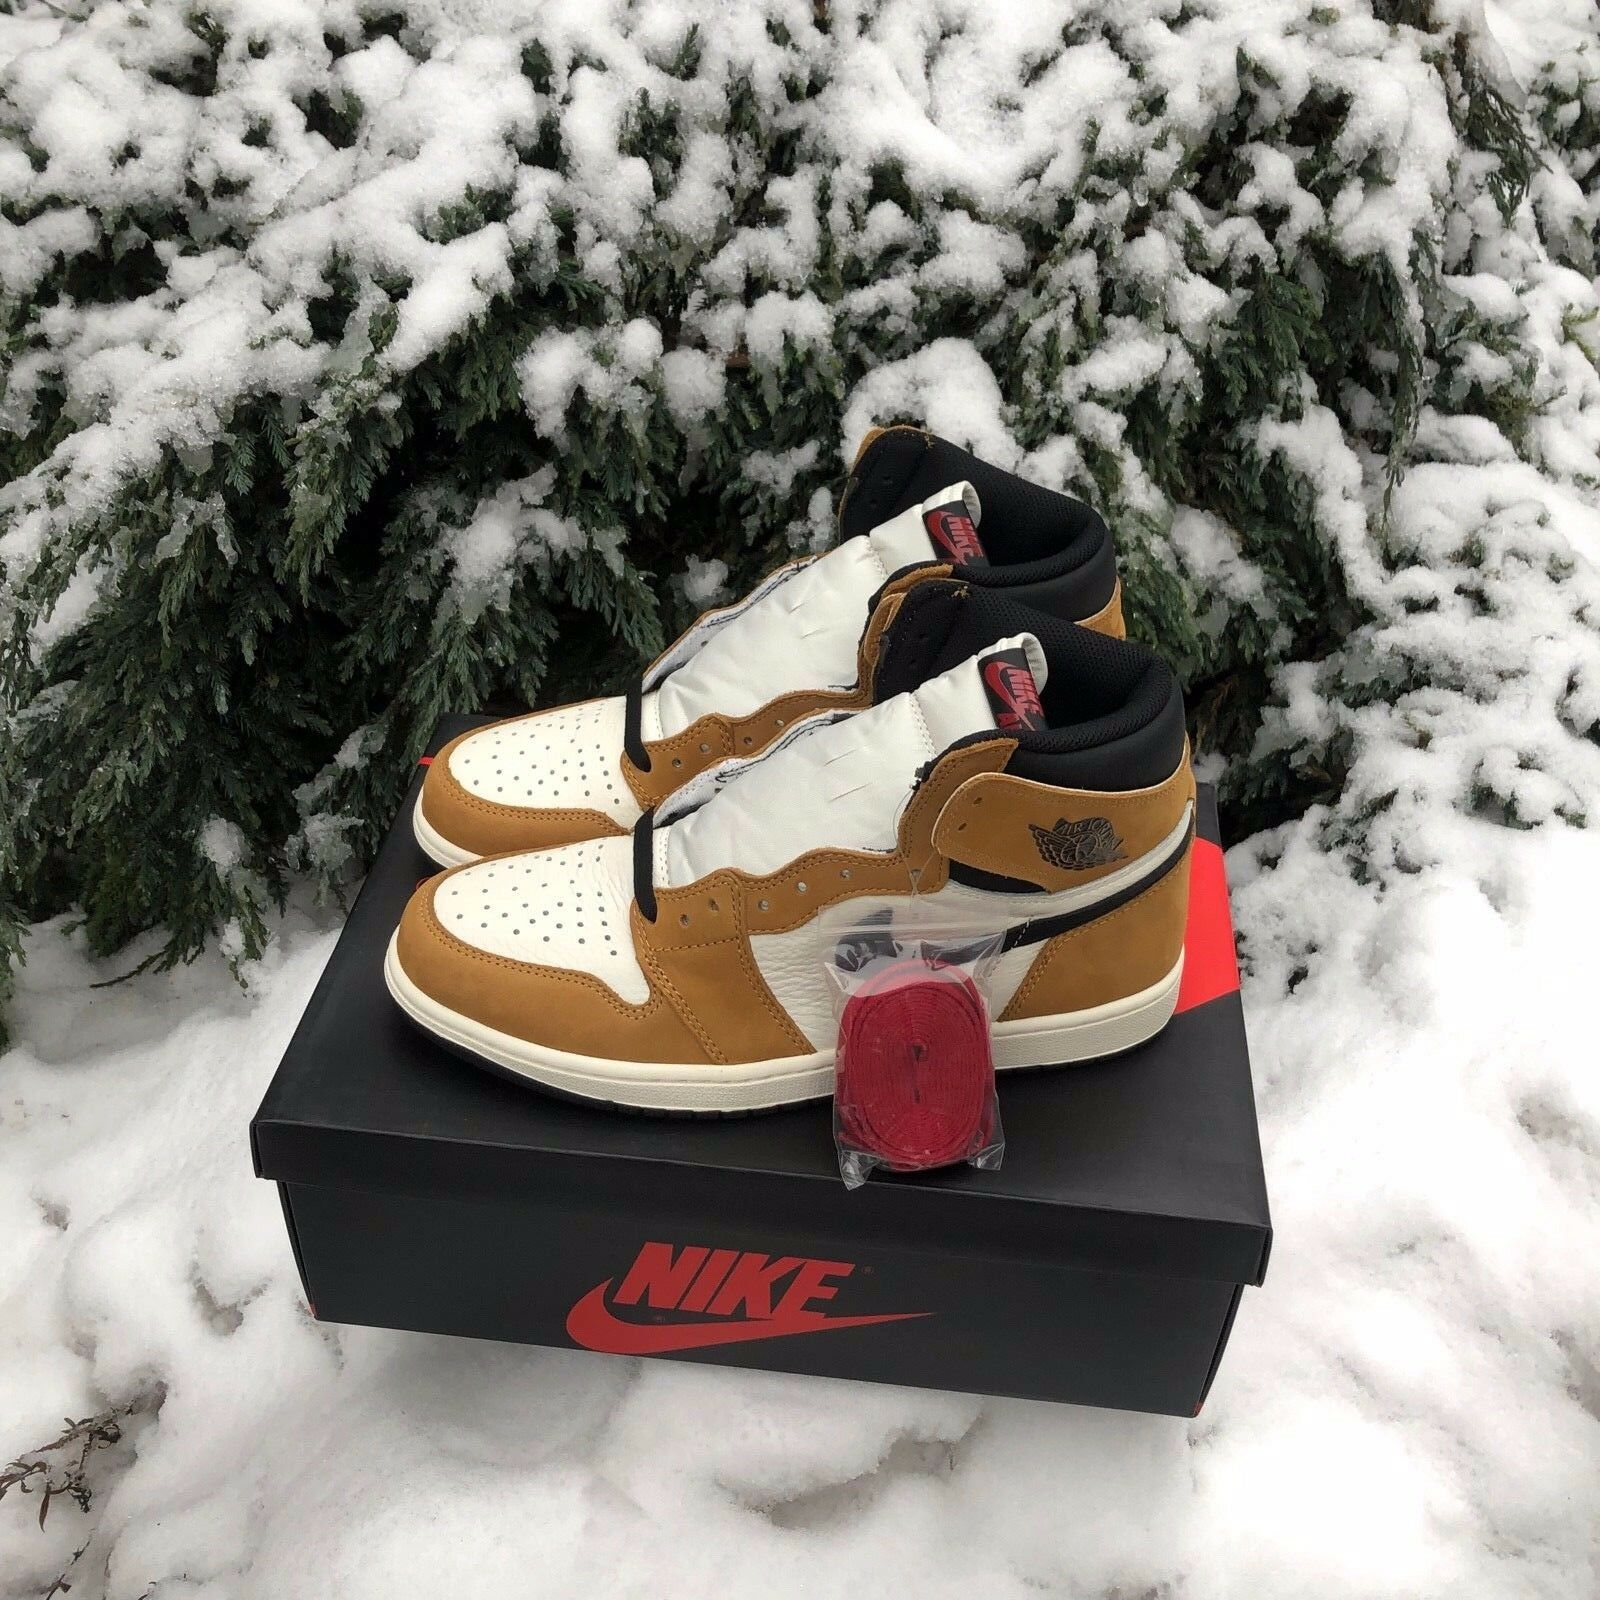 Nike Air Jordan 1 Retro High OG ROOKIE OF THE YEAR golden Harvest DS 555088-700